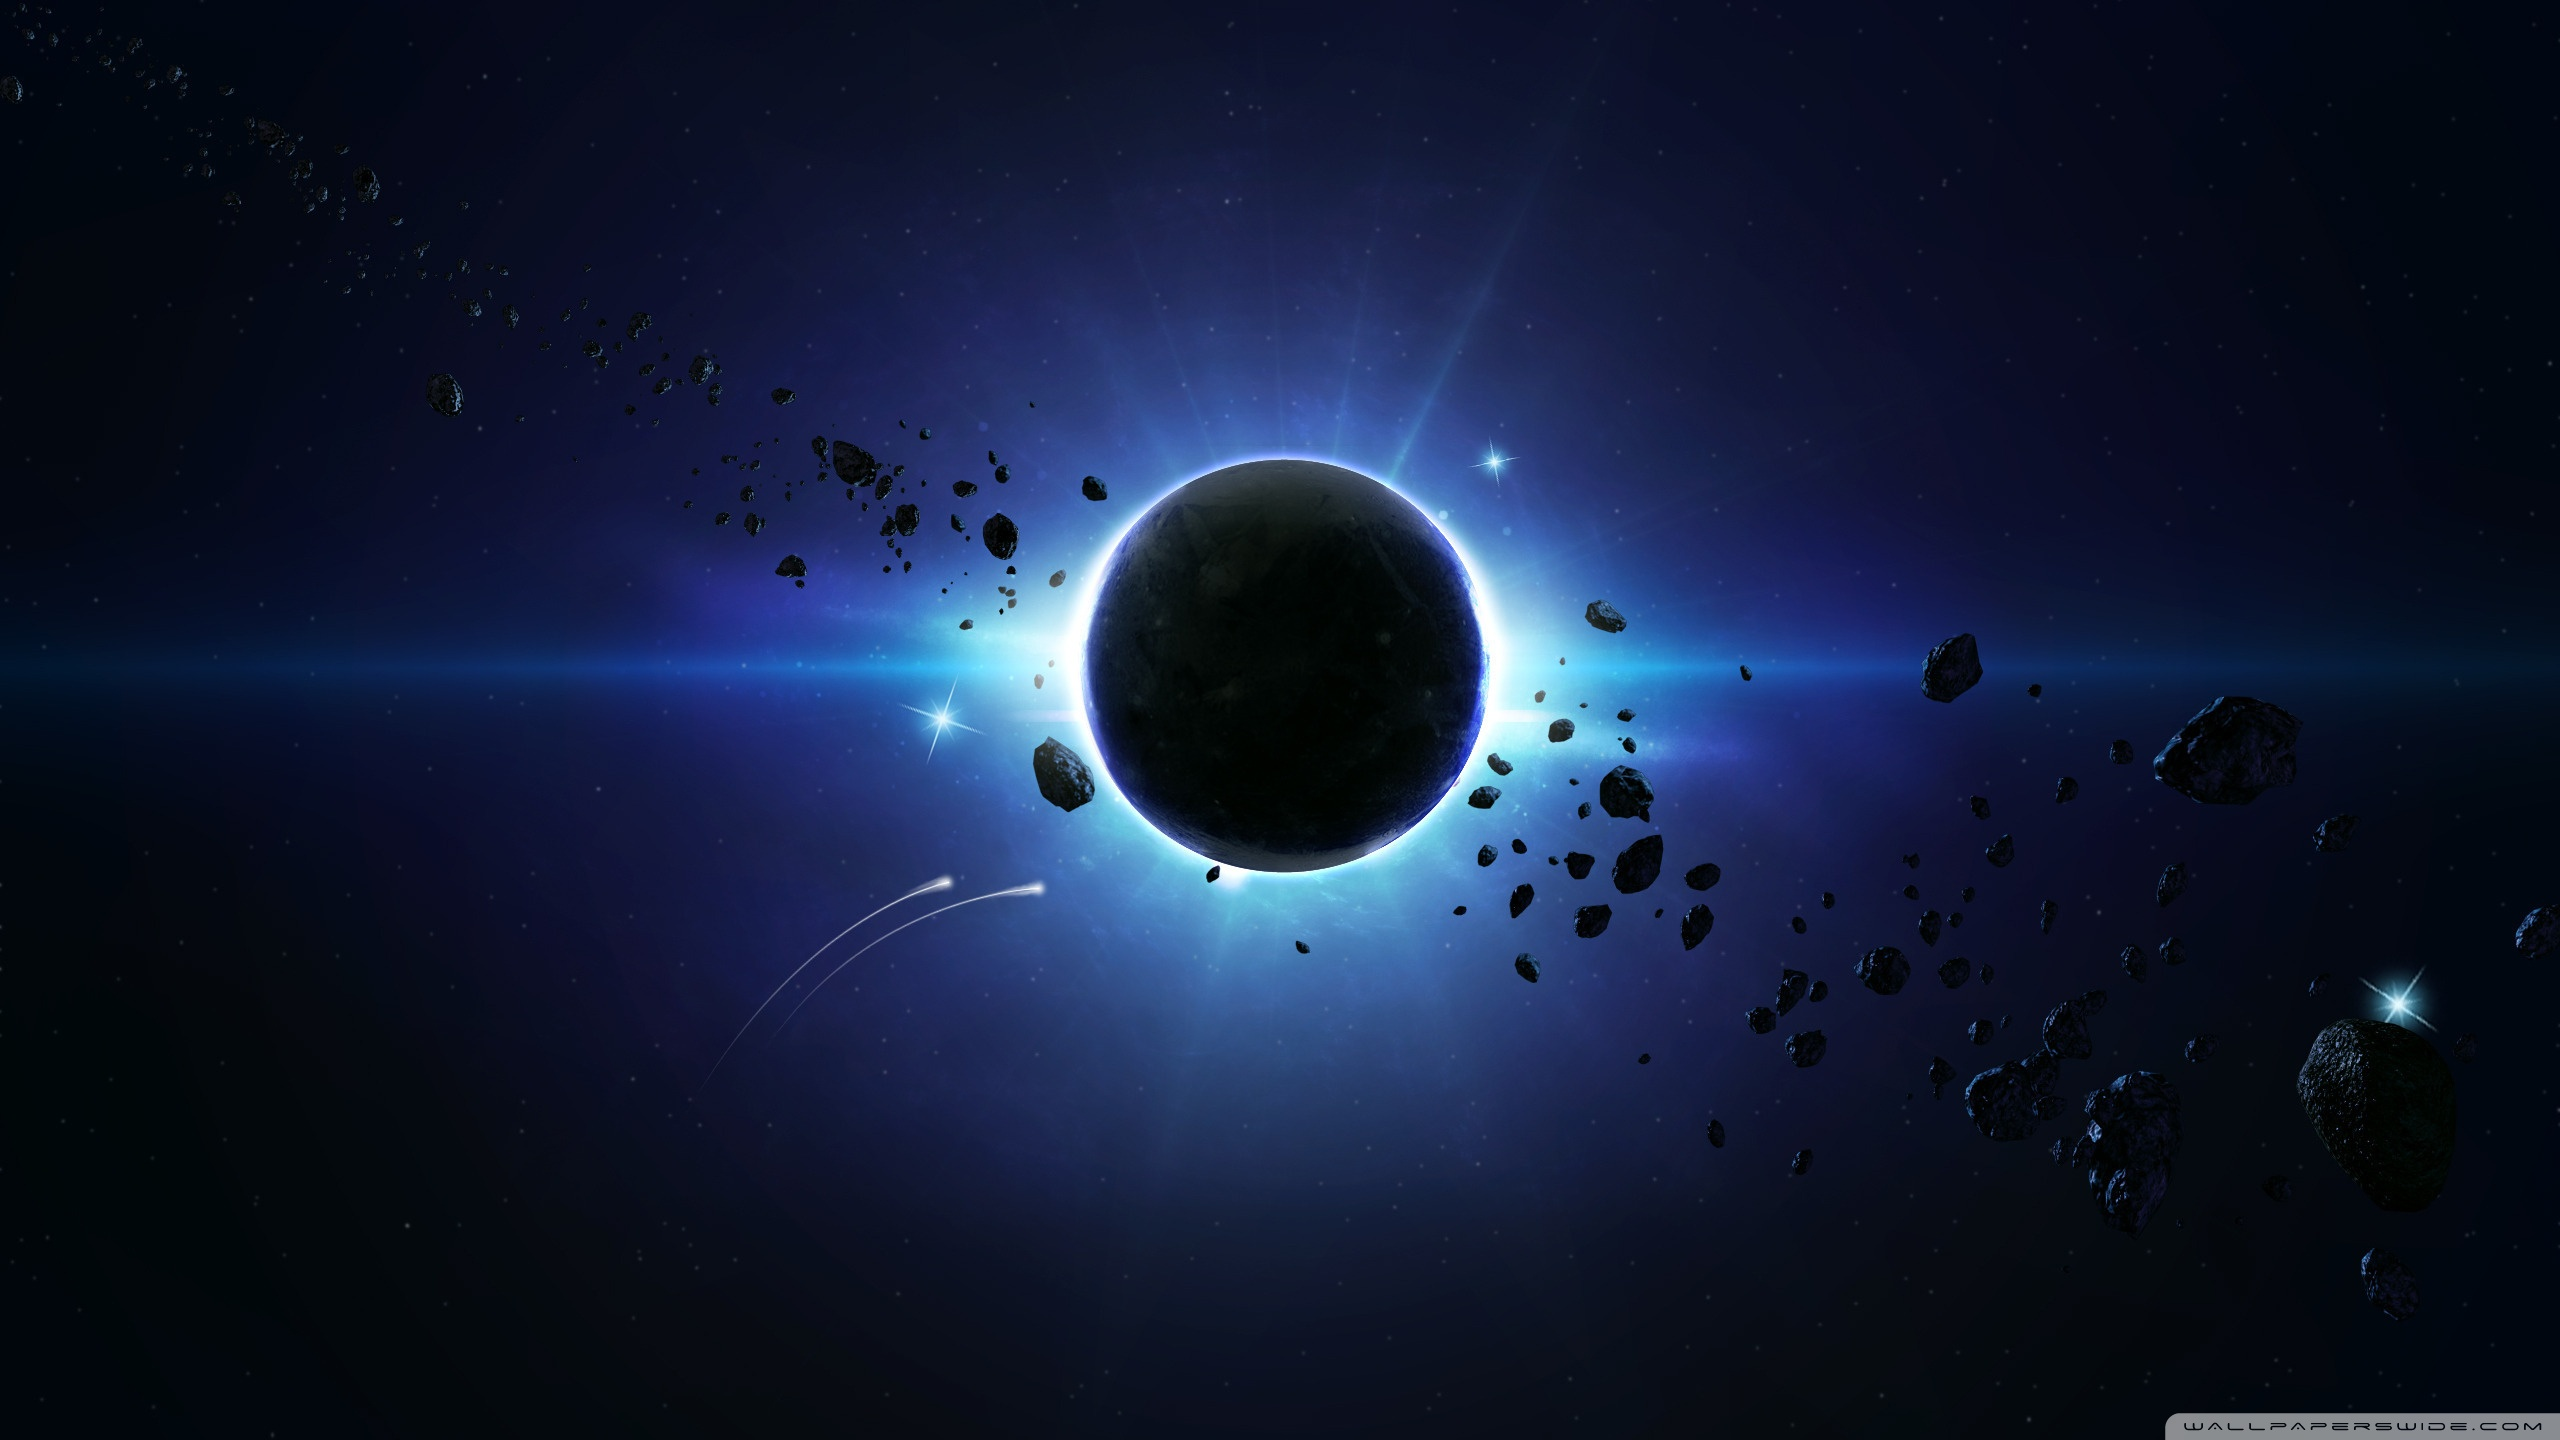 Eclipse Wallpapers Hd Backgrounds 70 images in Collection Page 1 2560x1440